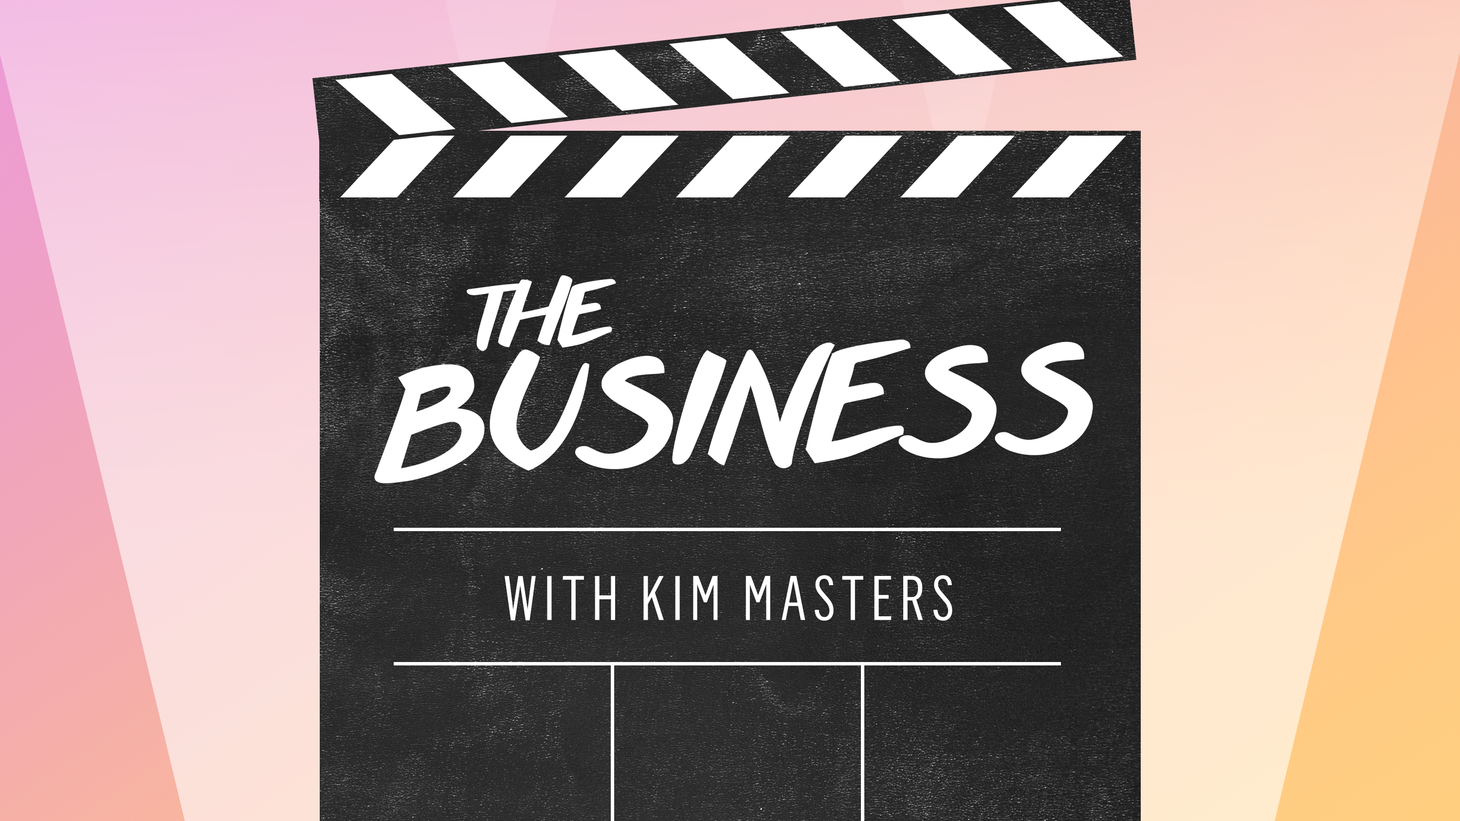 This week on The Business with Claude Brodesser, it-s a television spectacular with Variety-s TV editor, the head of the new black TV channel and a guy who can make TV disappear.